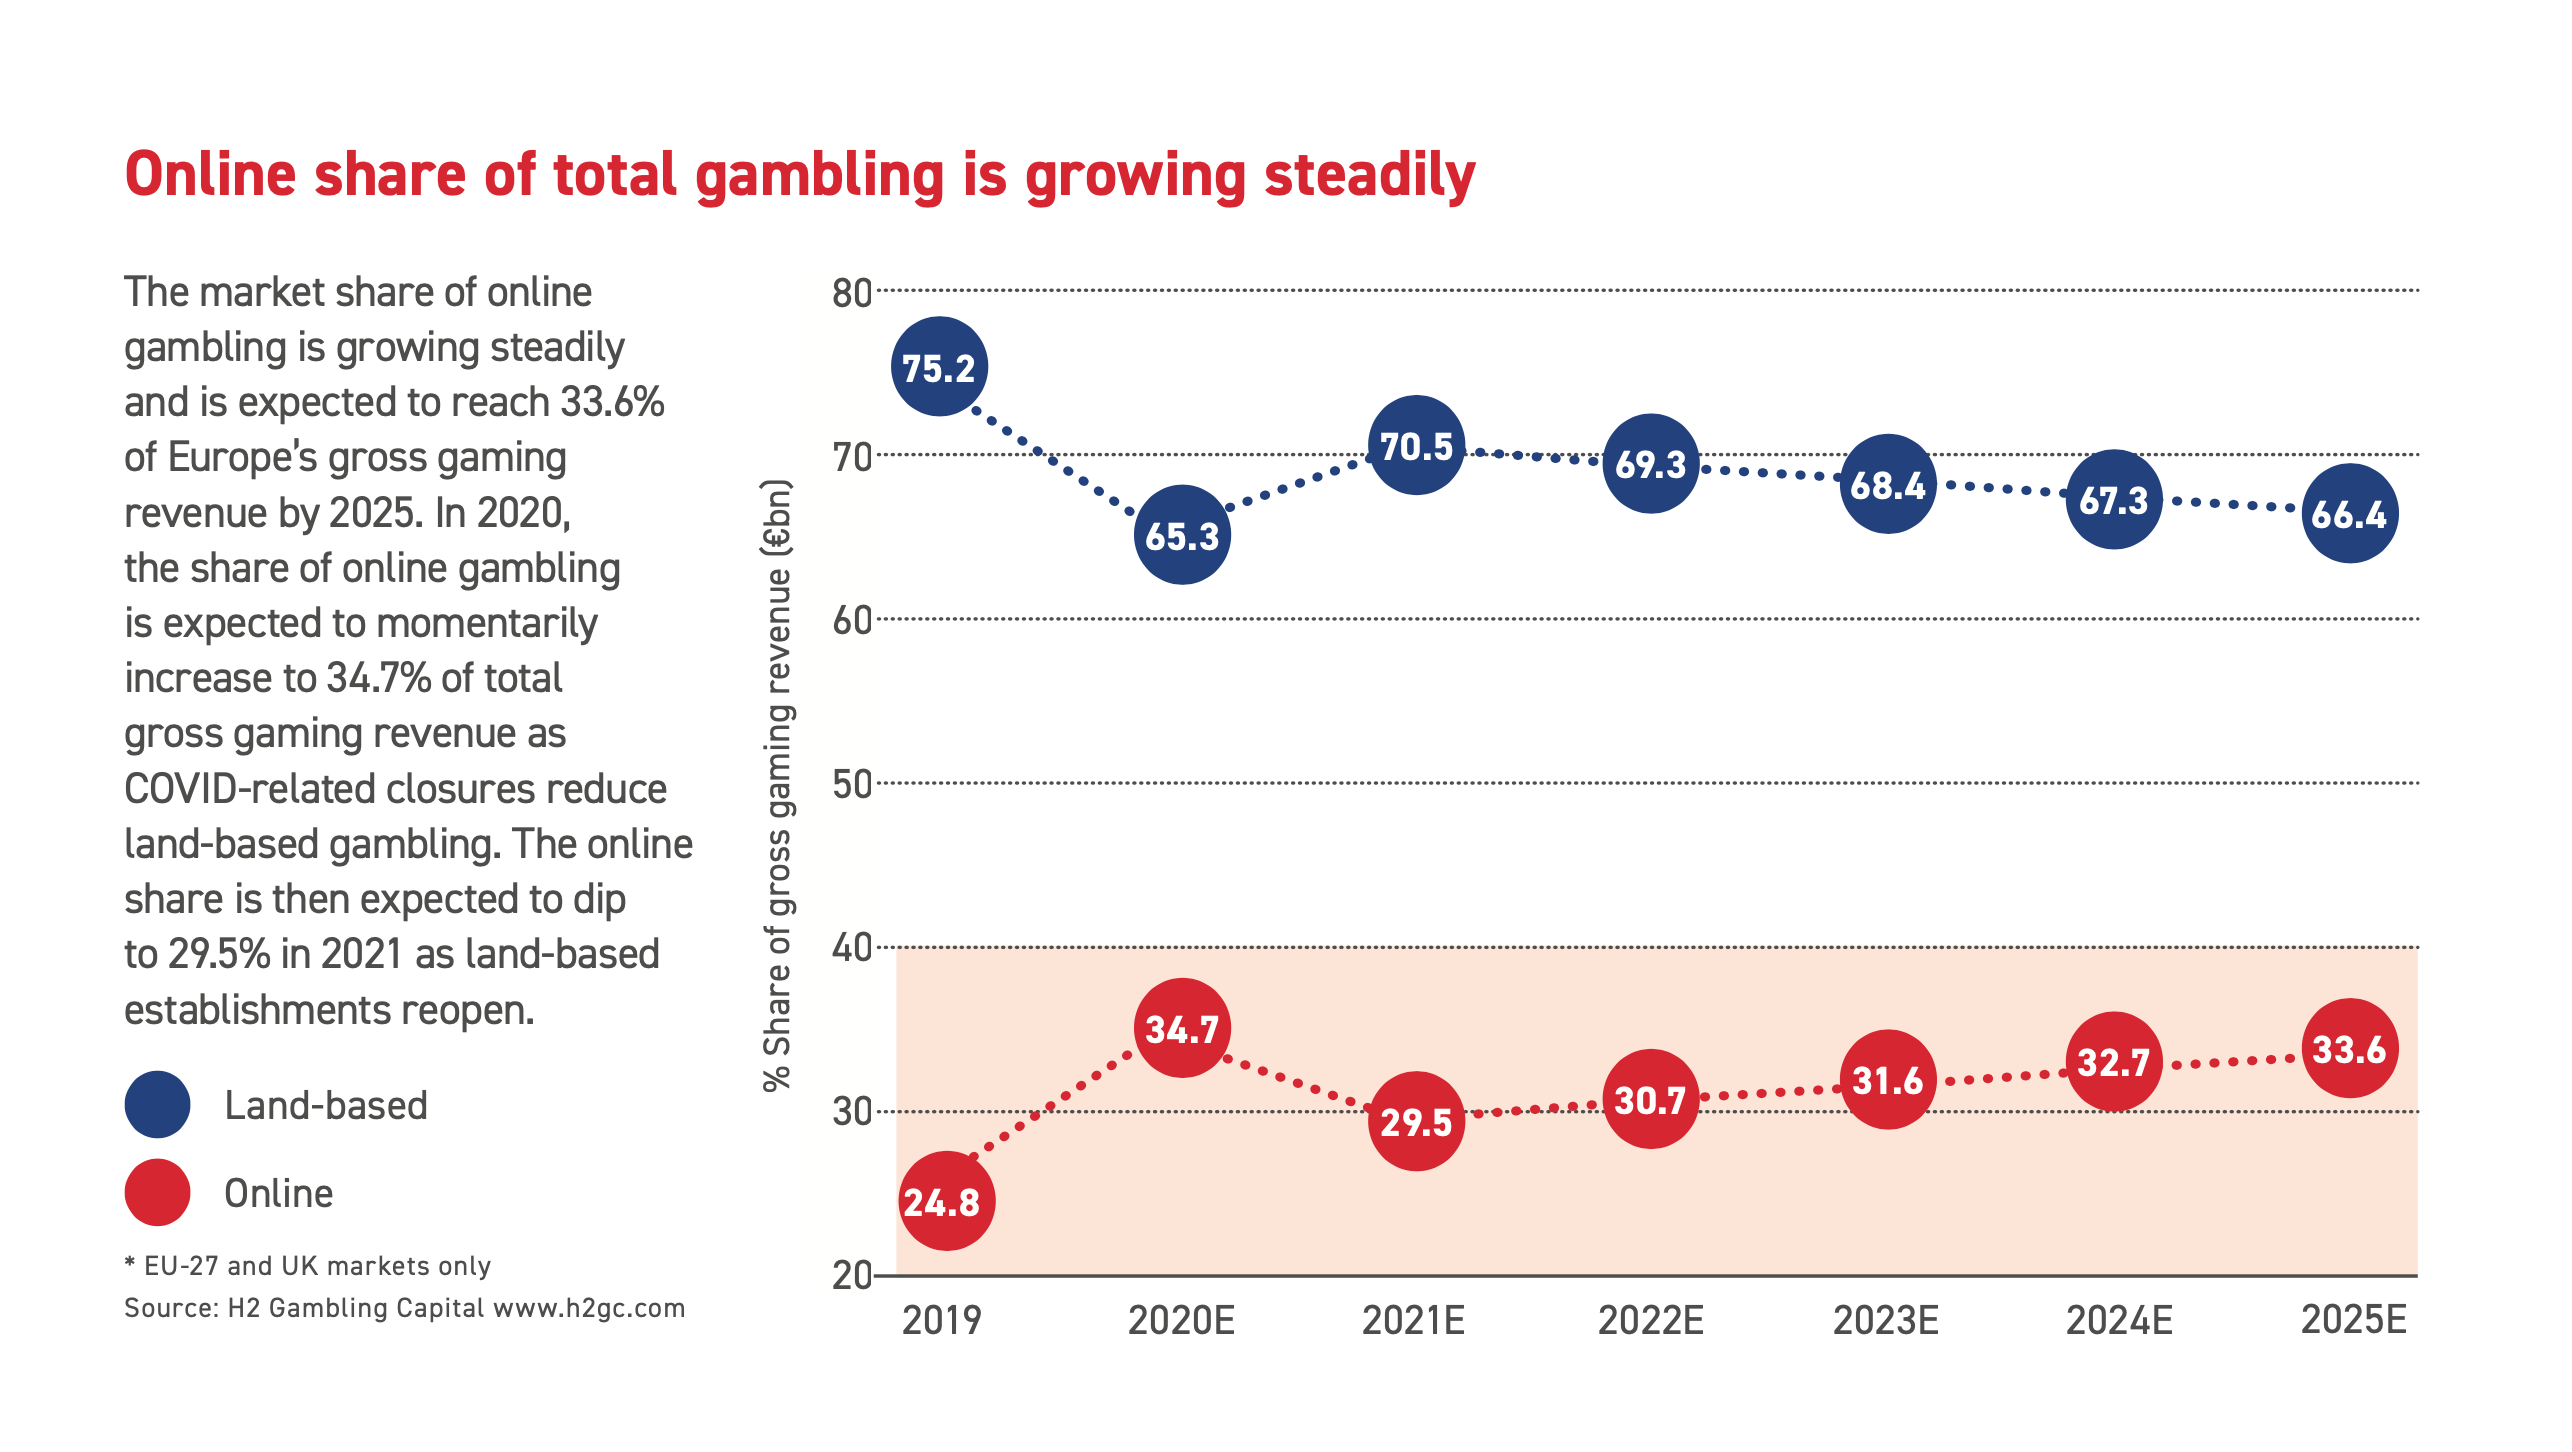 Online and land-based shares in the European gambling market